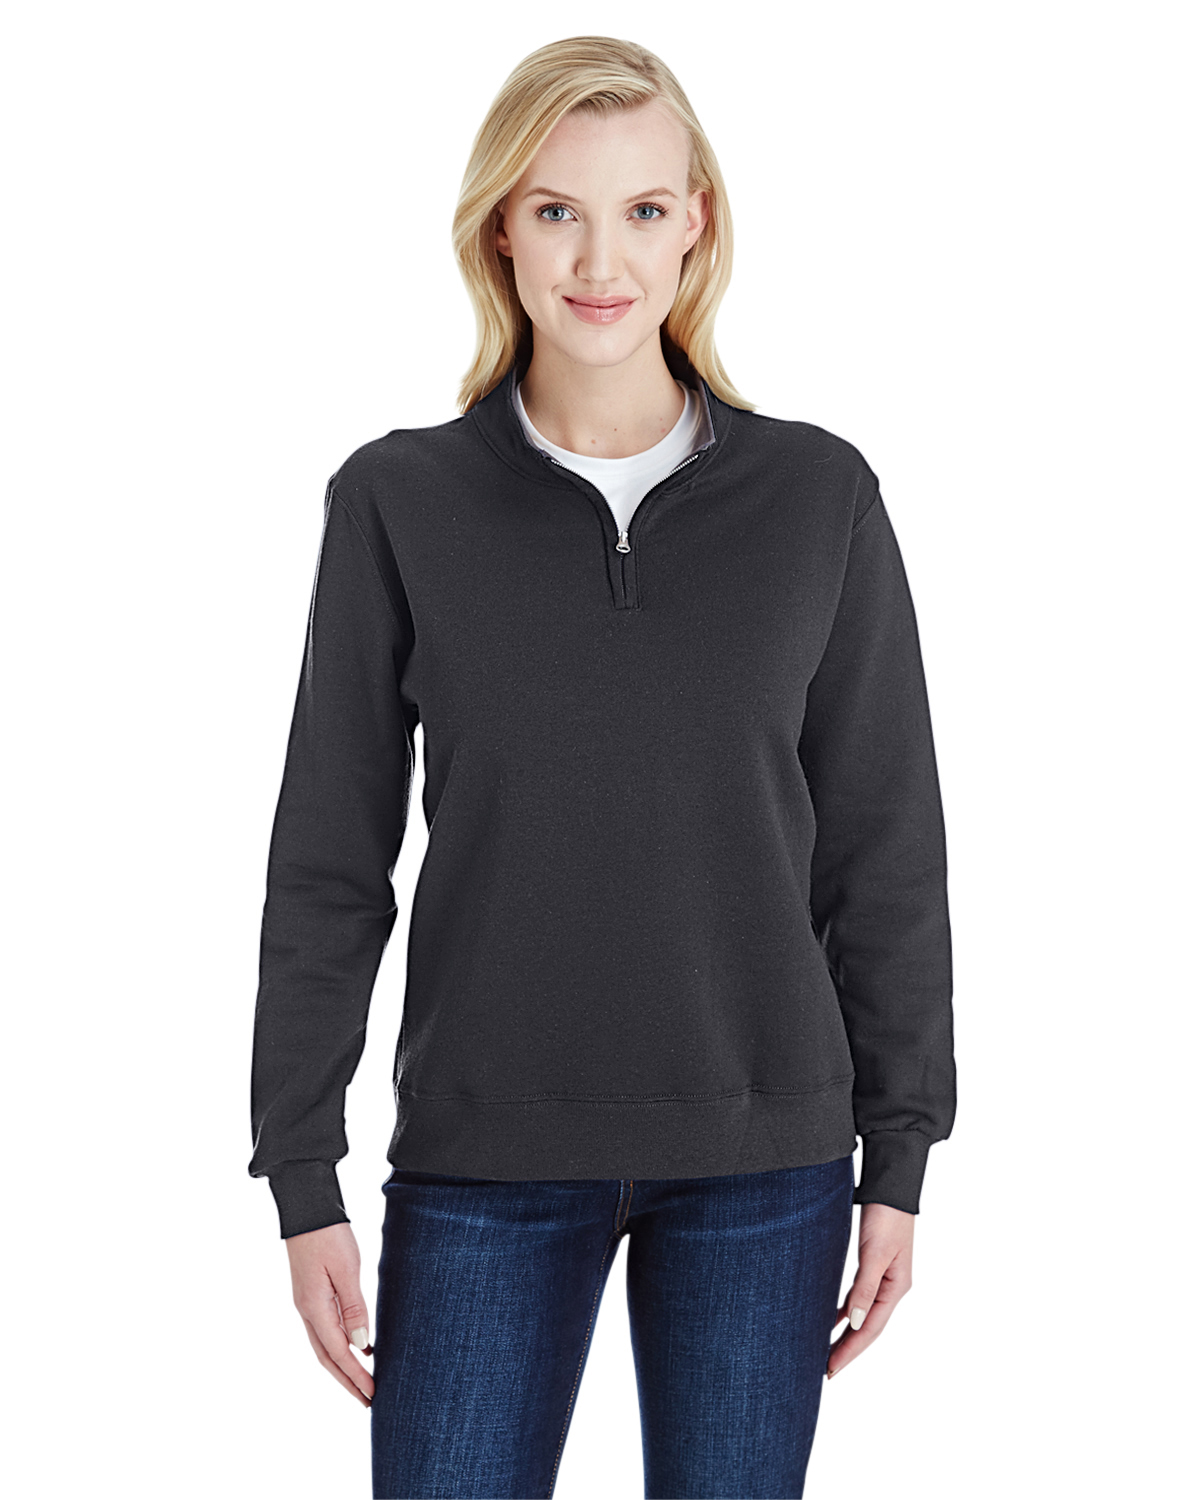 Fruit of the Loom LSF95R - Ladies Sofspun Quarter-Zip ...